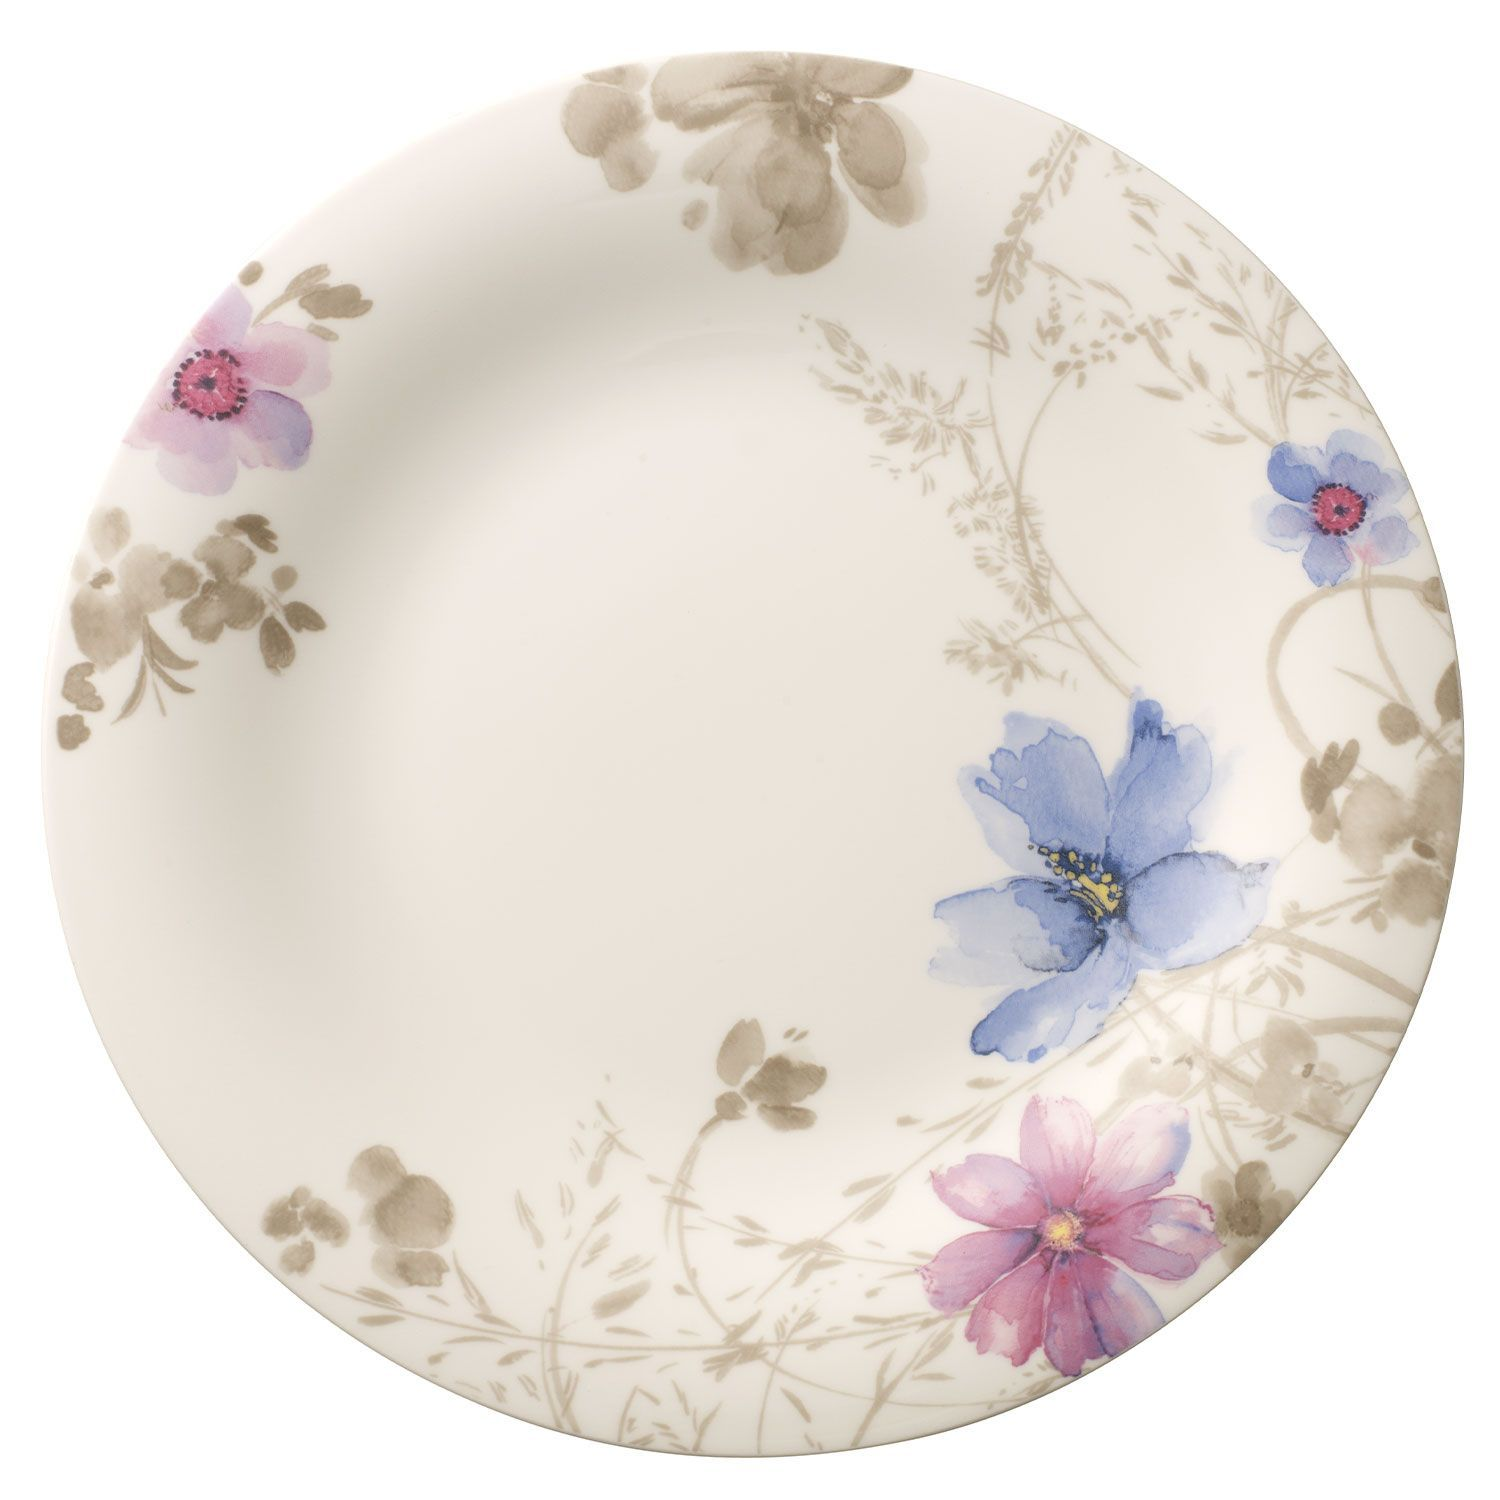 Pin On Dishware Collections